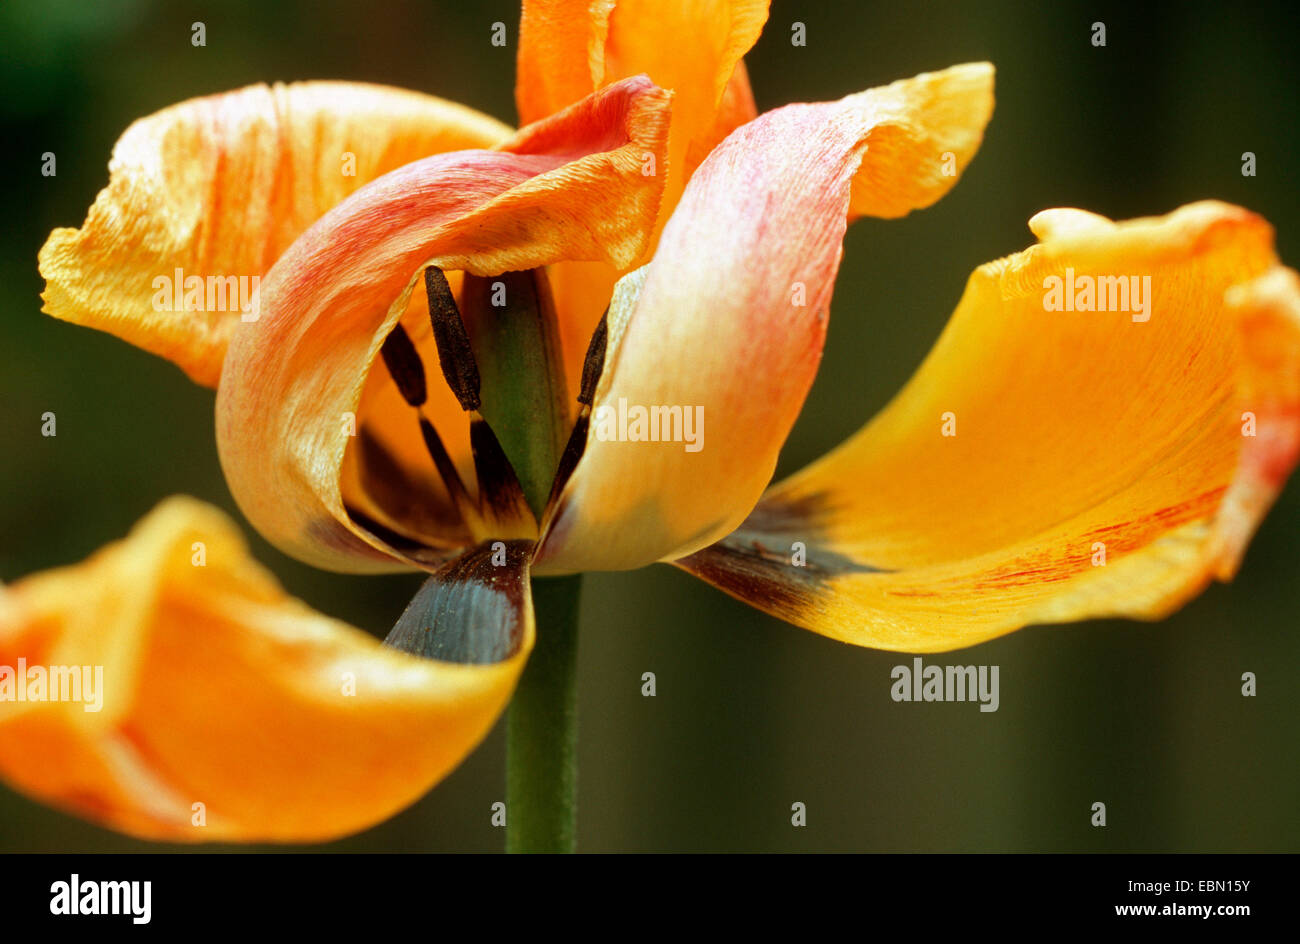 common garden tulip (Tulipa gesneriana), withered yellow tulip - Stock Image